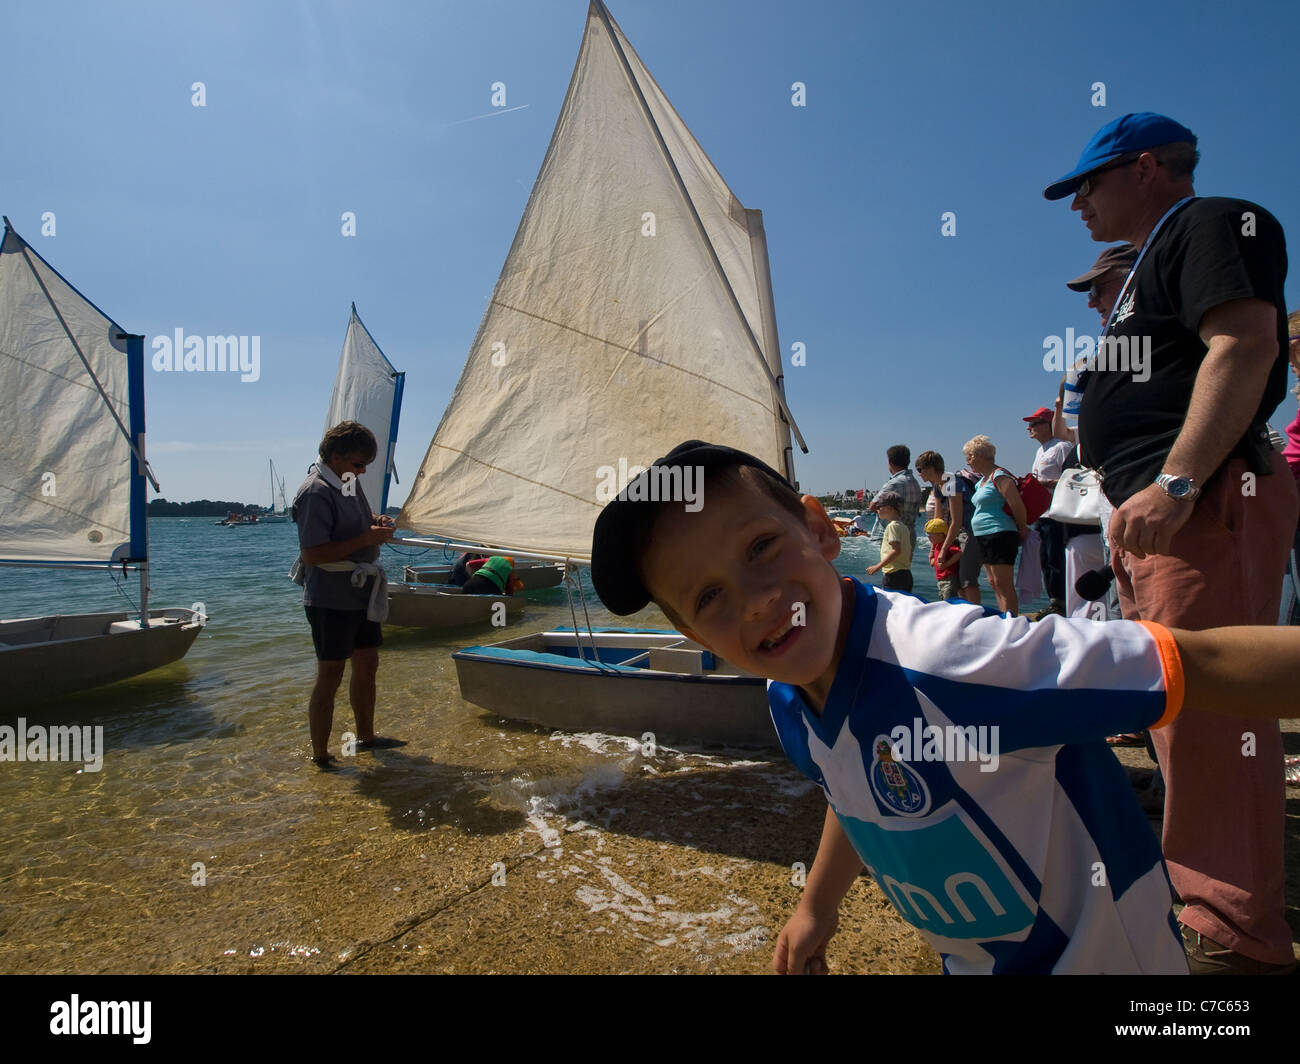 Spontaneous child, Race of little boats. Larmos Baden, Bay of Morbihan, Brittany, France, Europe. - Stock Image